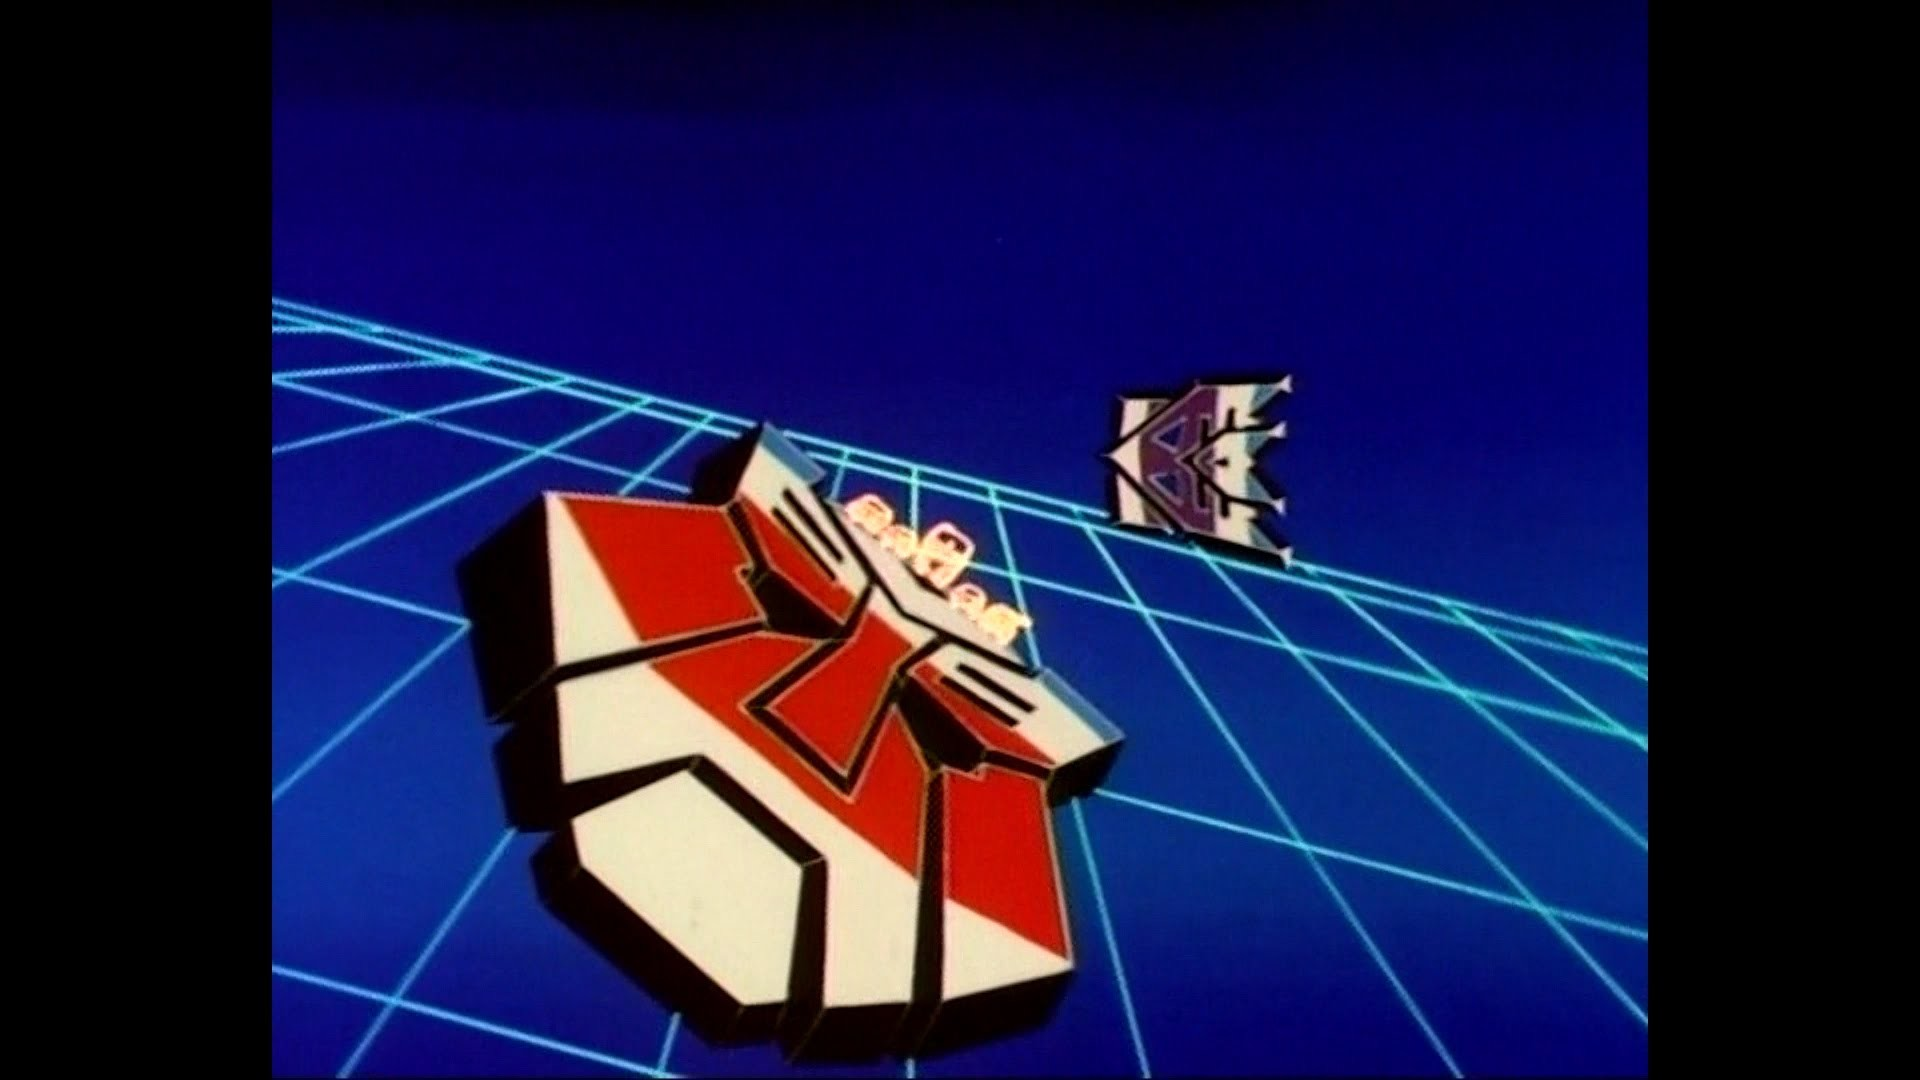 Awesome 80's Cartoon and TV Show Intros Transformers season 1